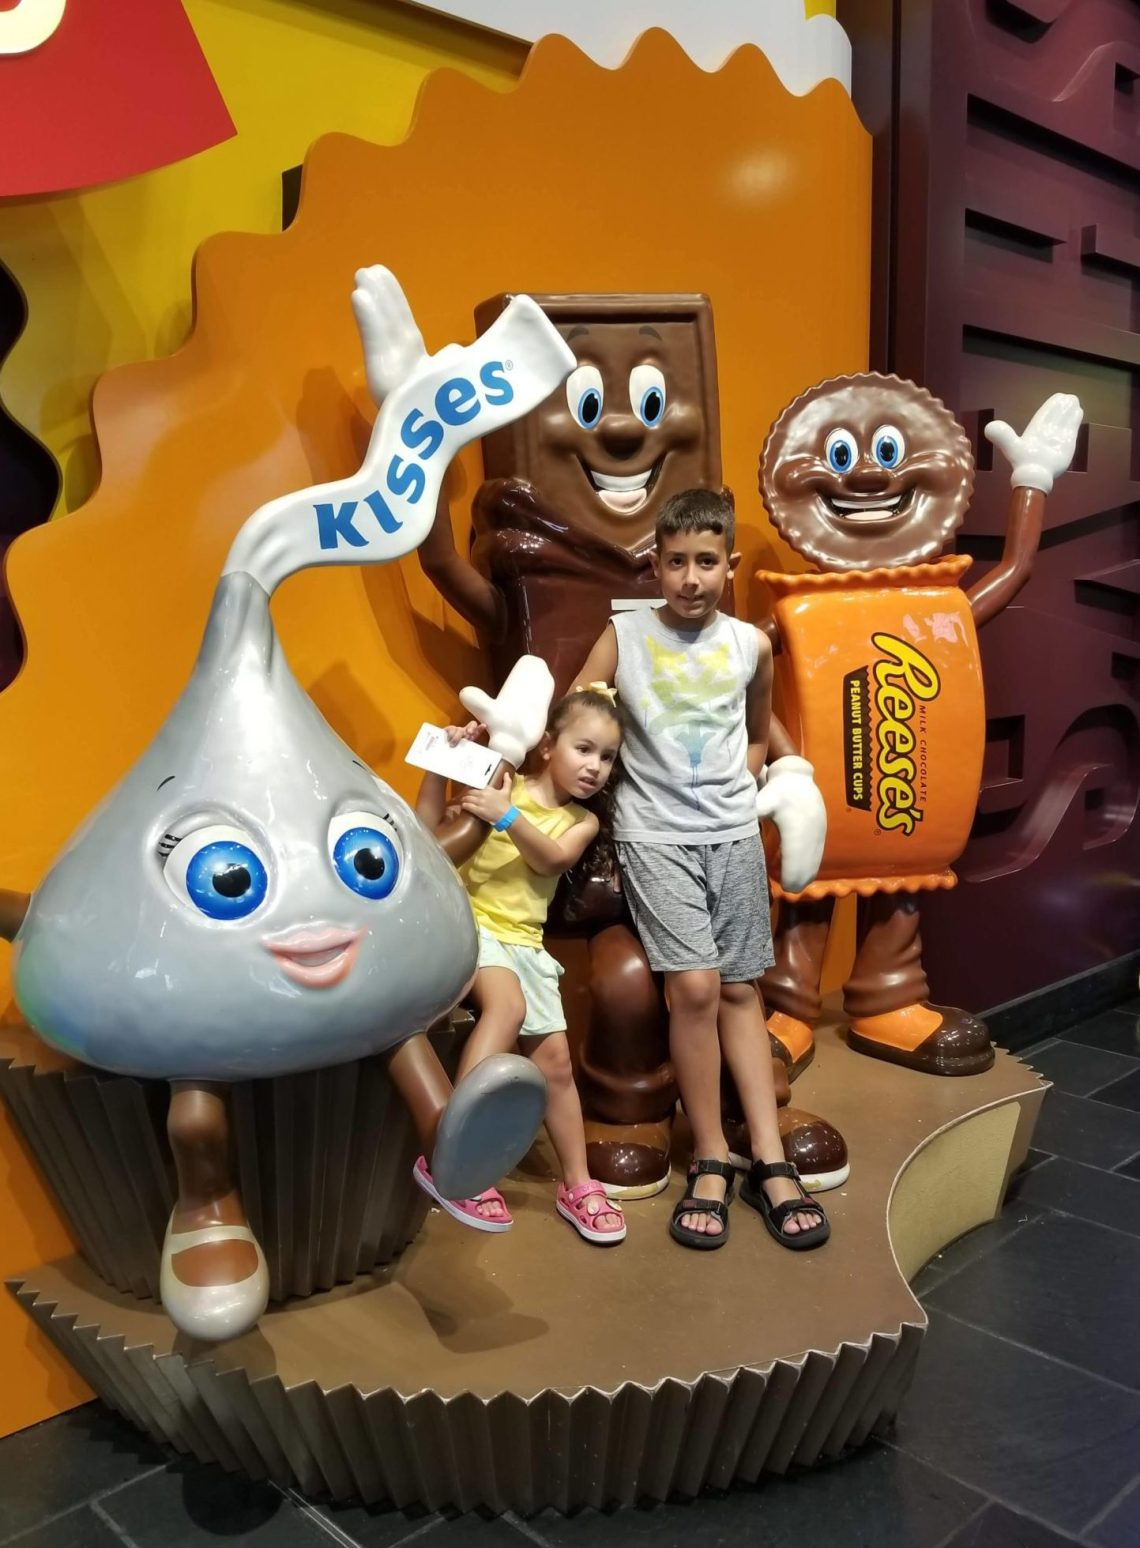 Our Family Road Trip to Hershey Park with Chevrolet - NYC